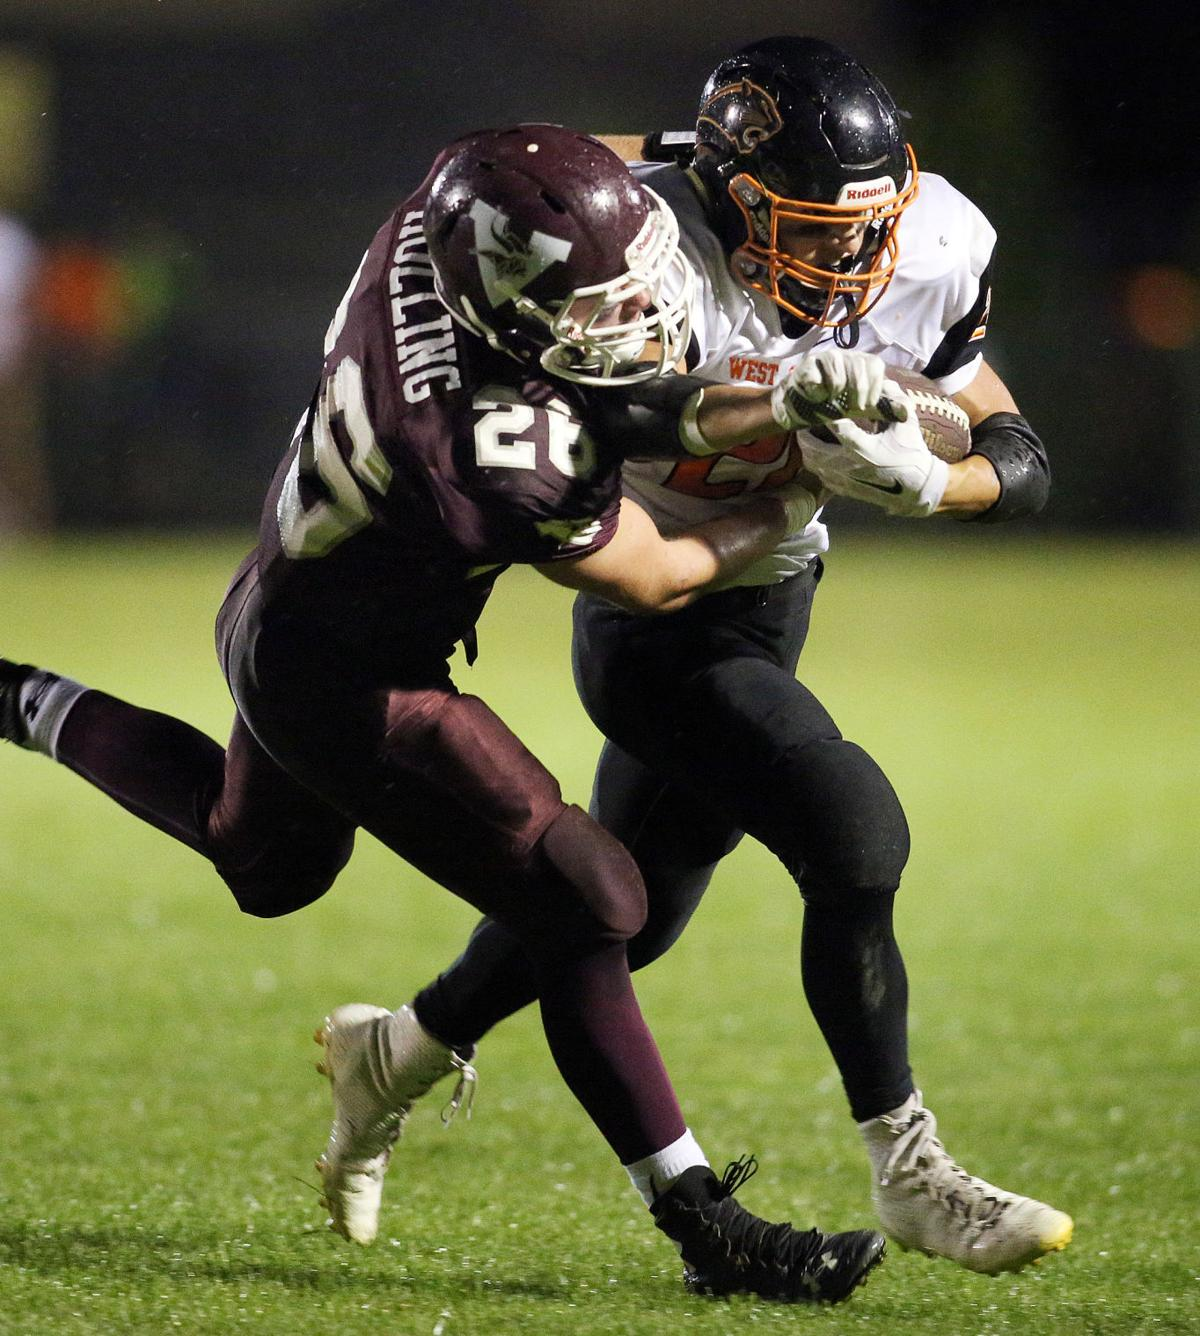 High school football preview: Abe Molling hopes for big return at Holmen